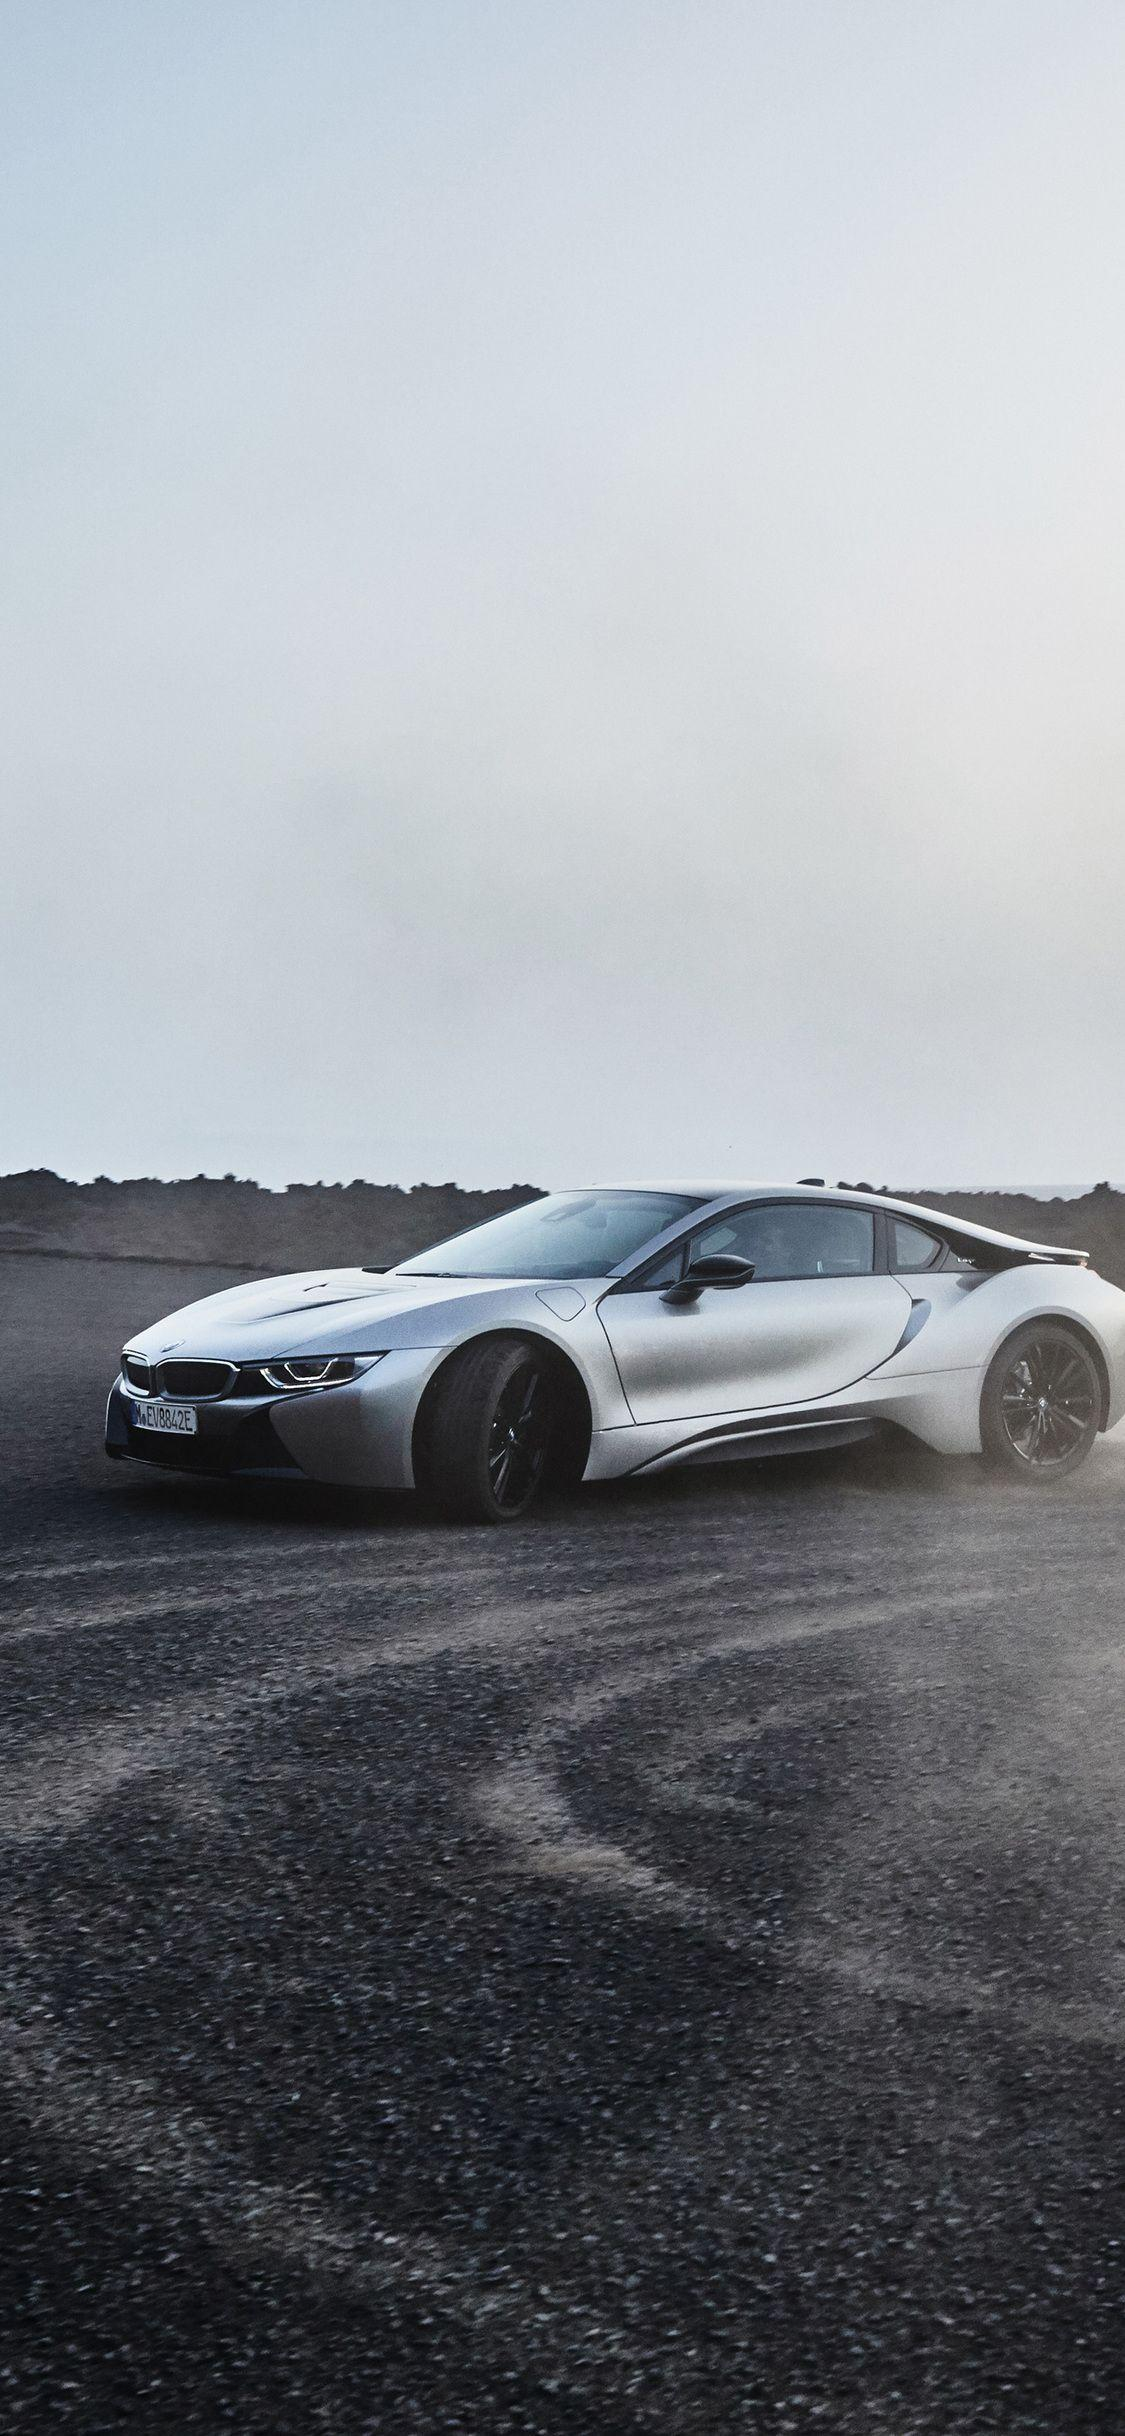 2018 Bmw I8 Coupe Wallpapers Wallpaper Cave